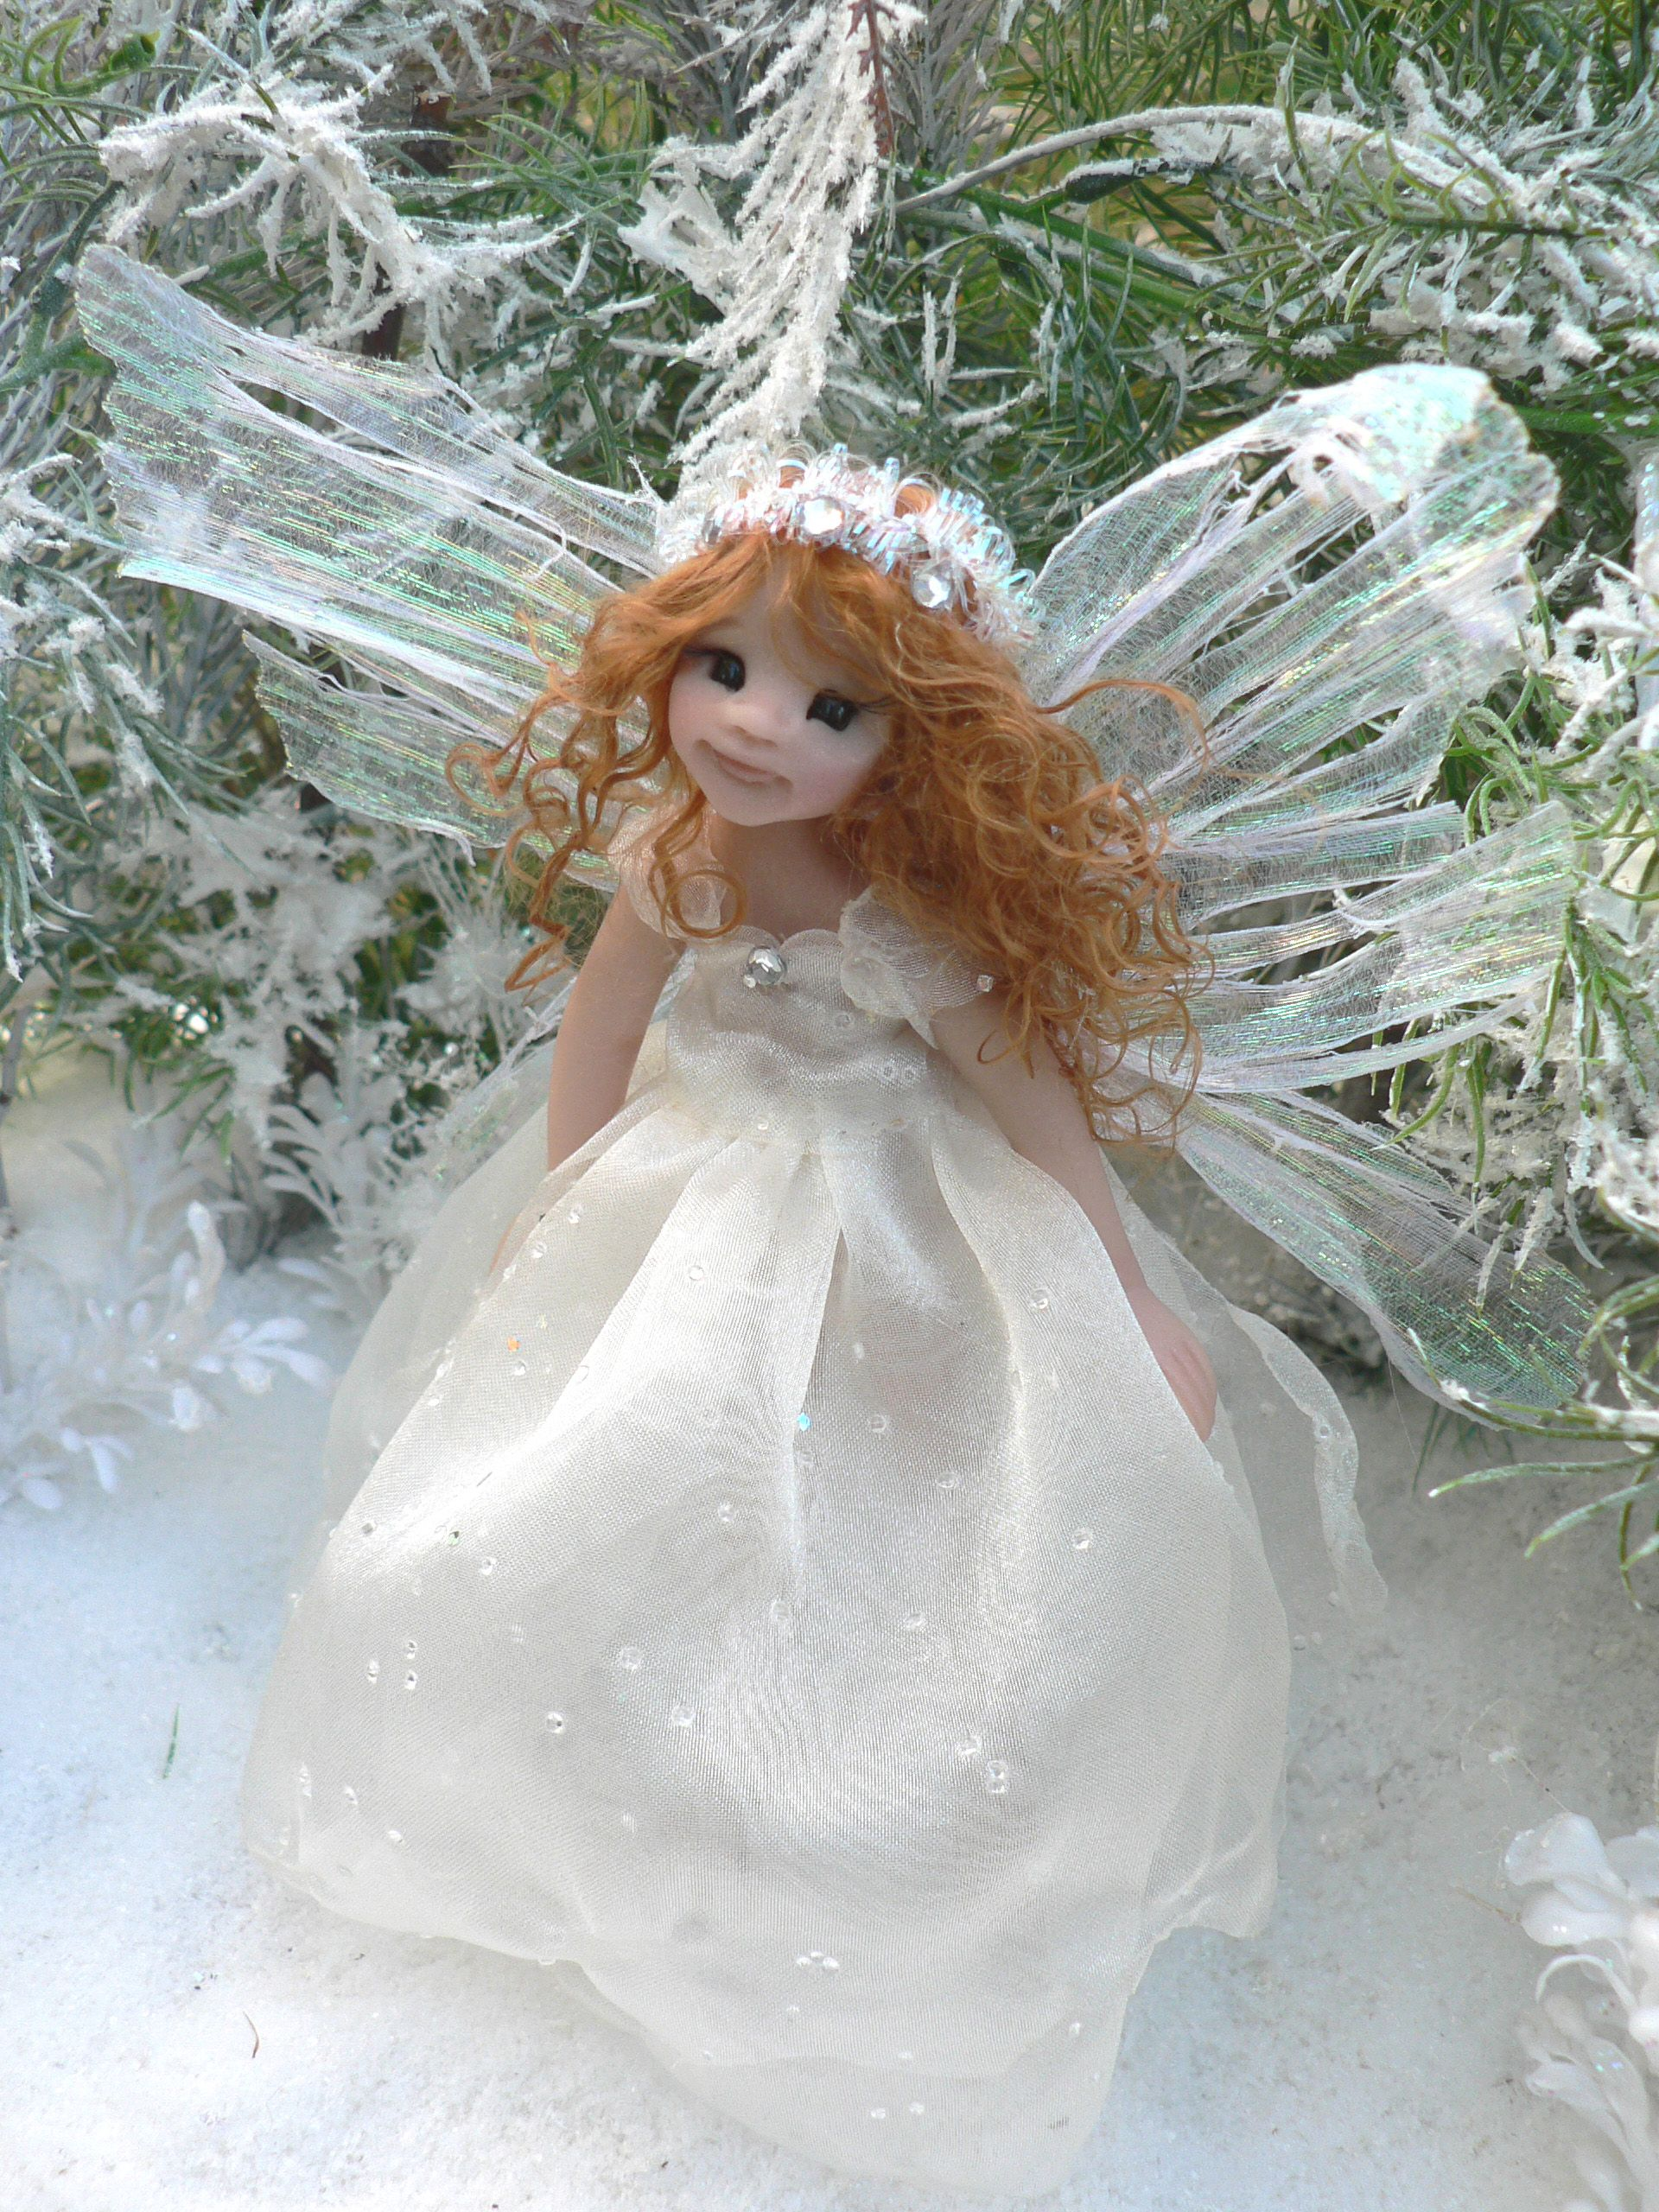 Snow Fairy | snow fairy click on image to view larger pictures this sad snow fairy ...